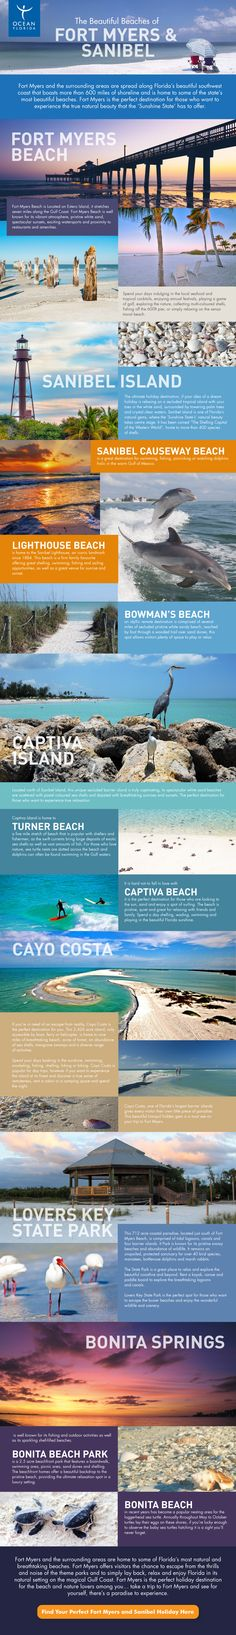 The county of Fort Myers sits on Florida's mainland, however it is within a short driving distance of Florida's southwest barrier islands, that are home to 600 miles of breathtaking white sandy beaches – perfect for shelling, surfing and sunbathing. The best beaches in the Fort Myers area are found on the islands of Captiva, …